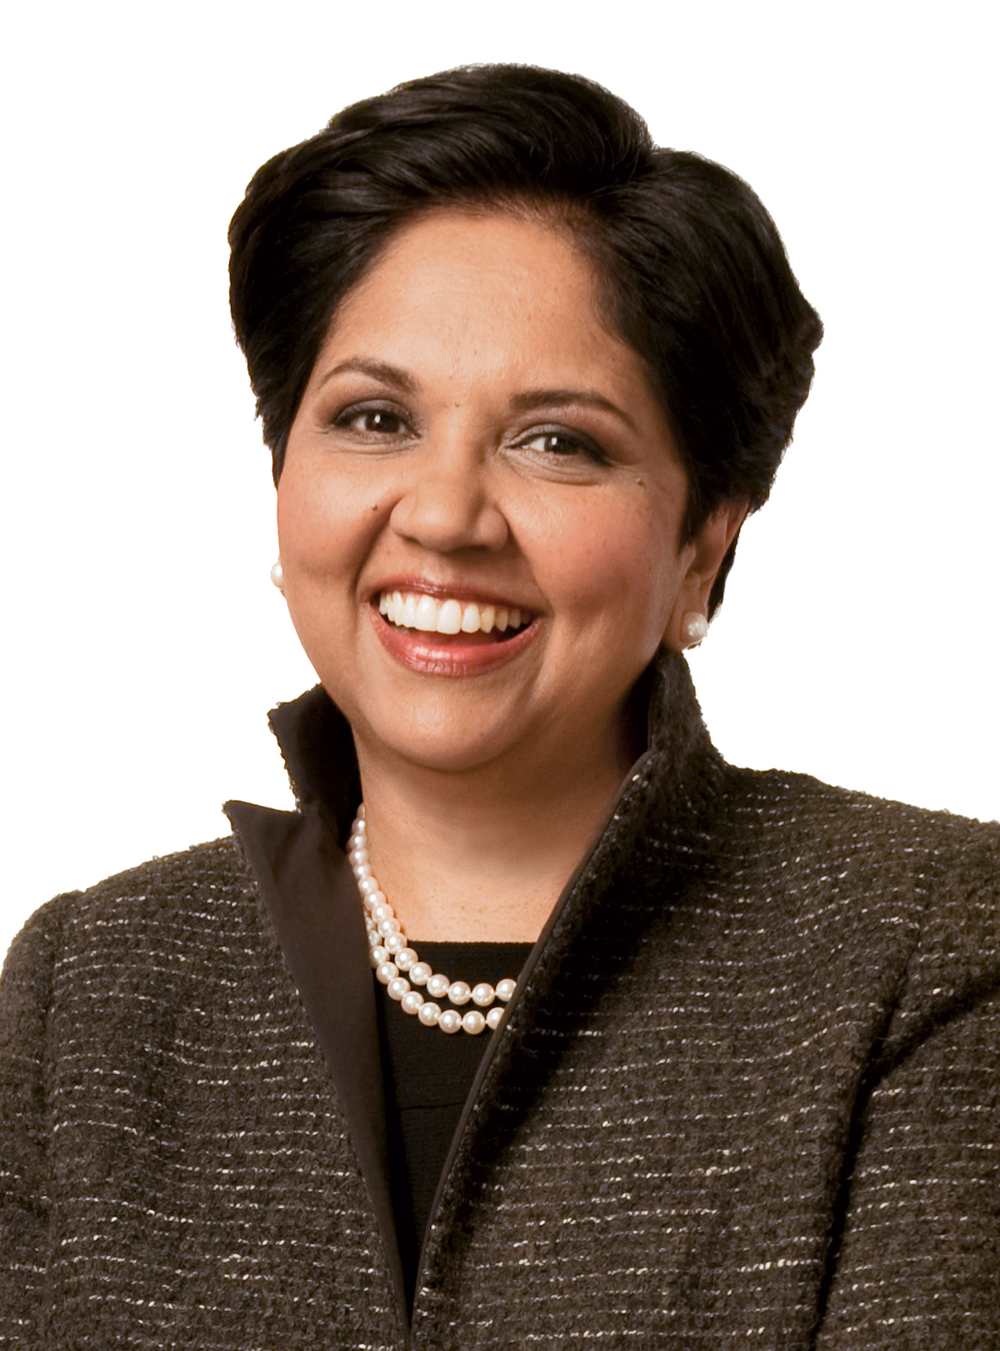 Indra Nooyi, Indian-born, naturalized American, business executive and the current Chairperson andChief Executive Officer of PepsiCo